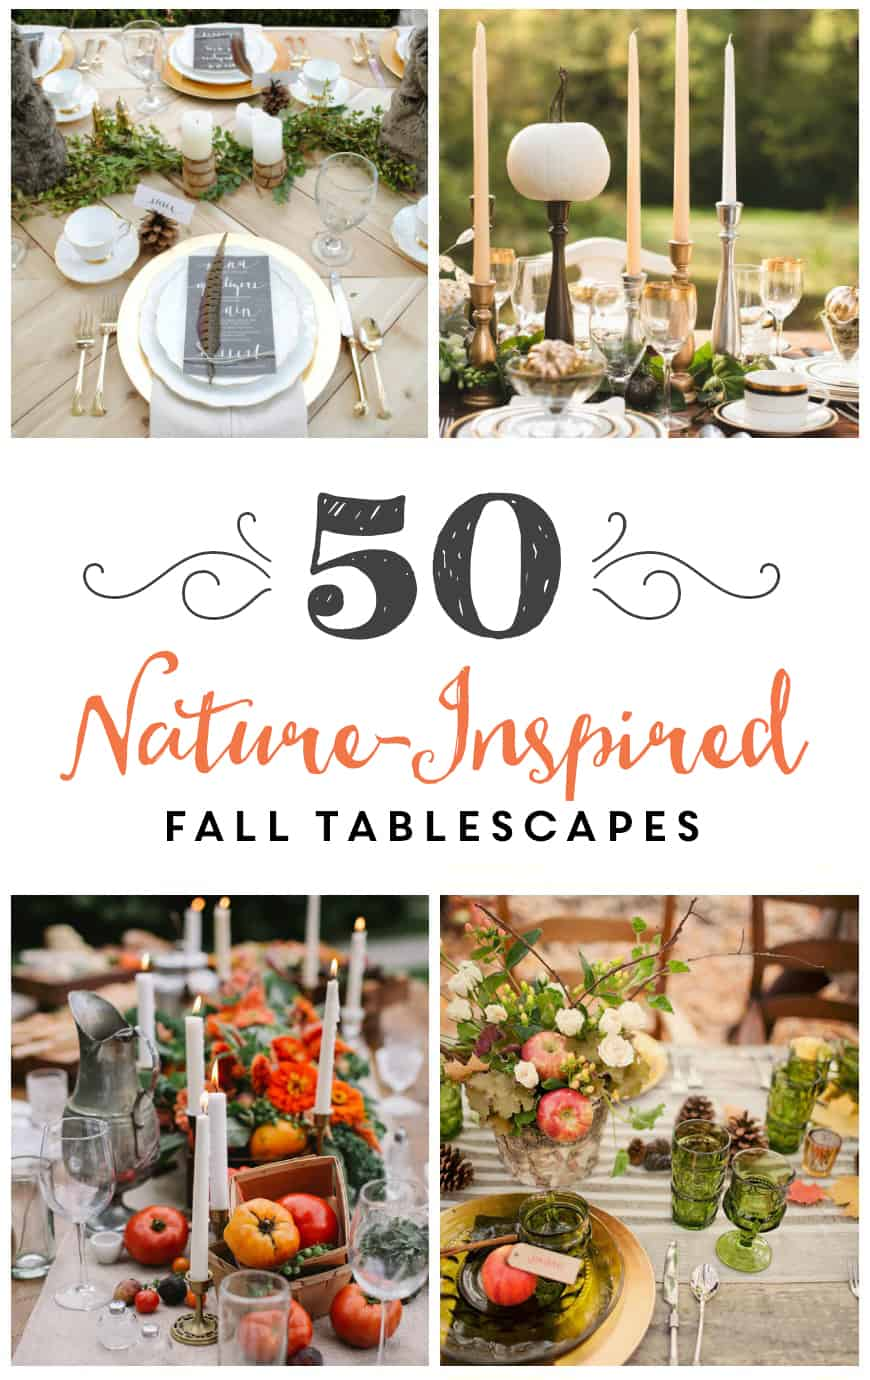 Looking for fall or thanksgiving tablescape ideas? Here are 50 nature inspired tablescapes filled with beautiful rustic elements.